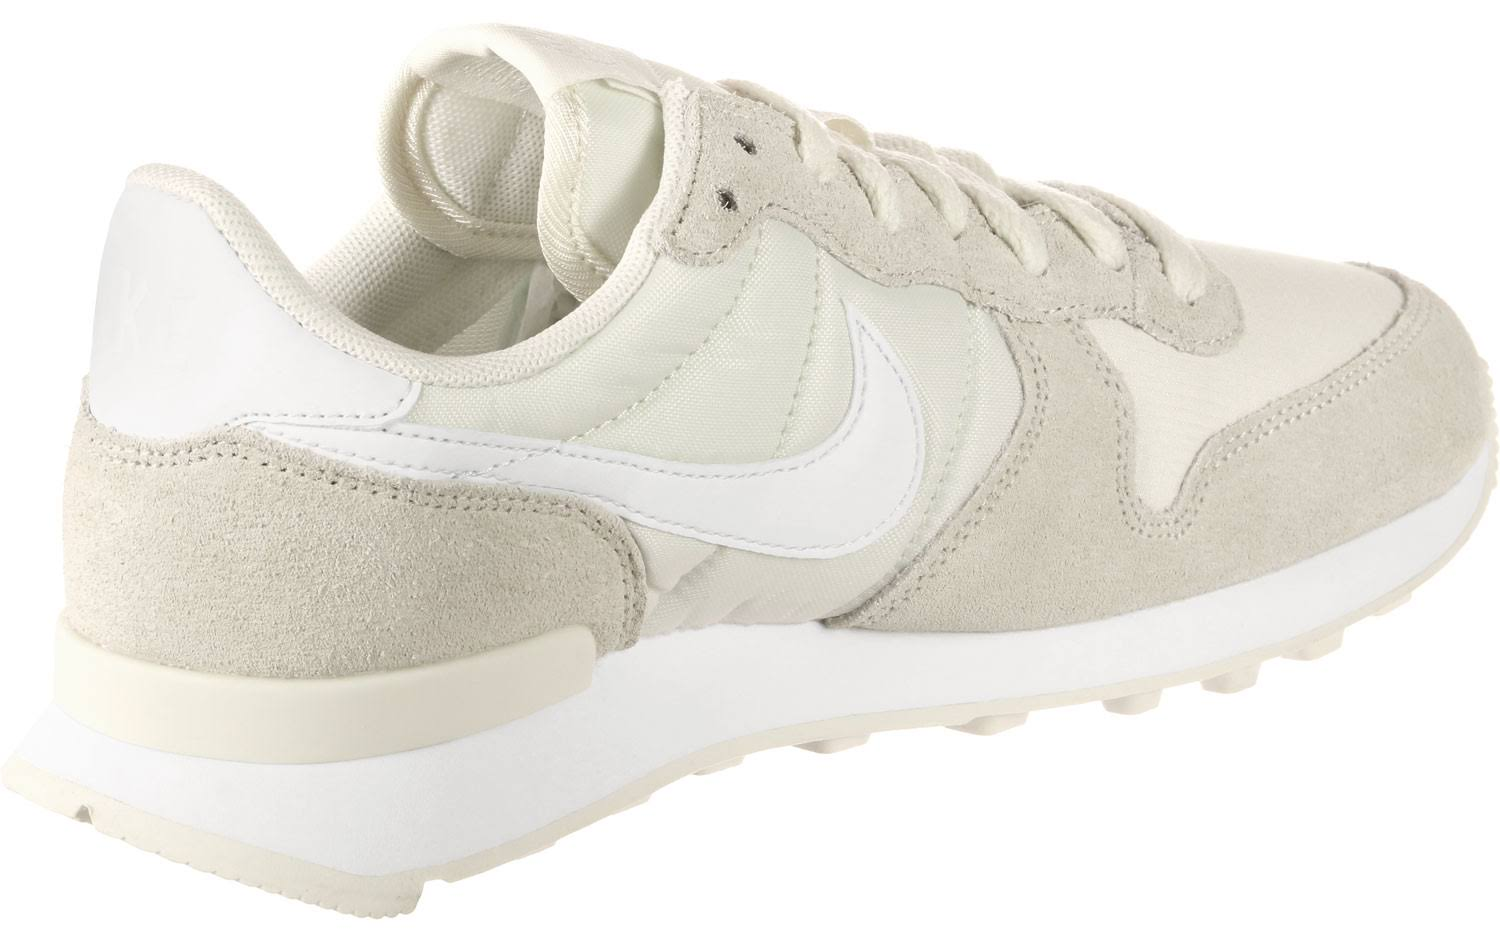 Dames Internationalist White Nike Schoenen Beige BroedxC